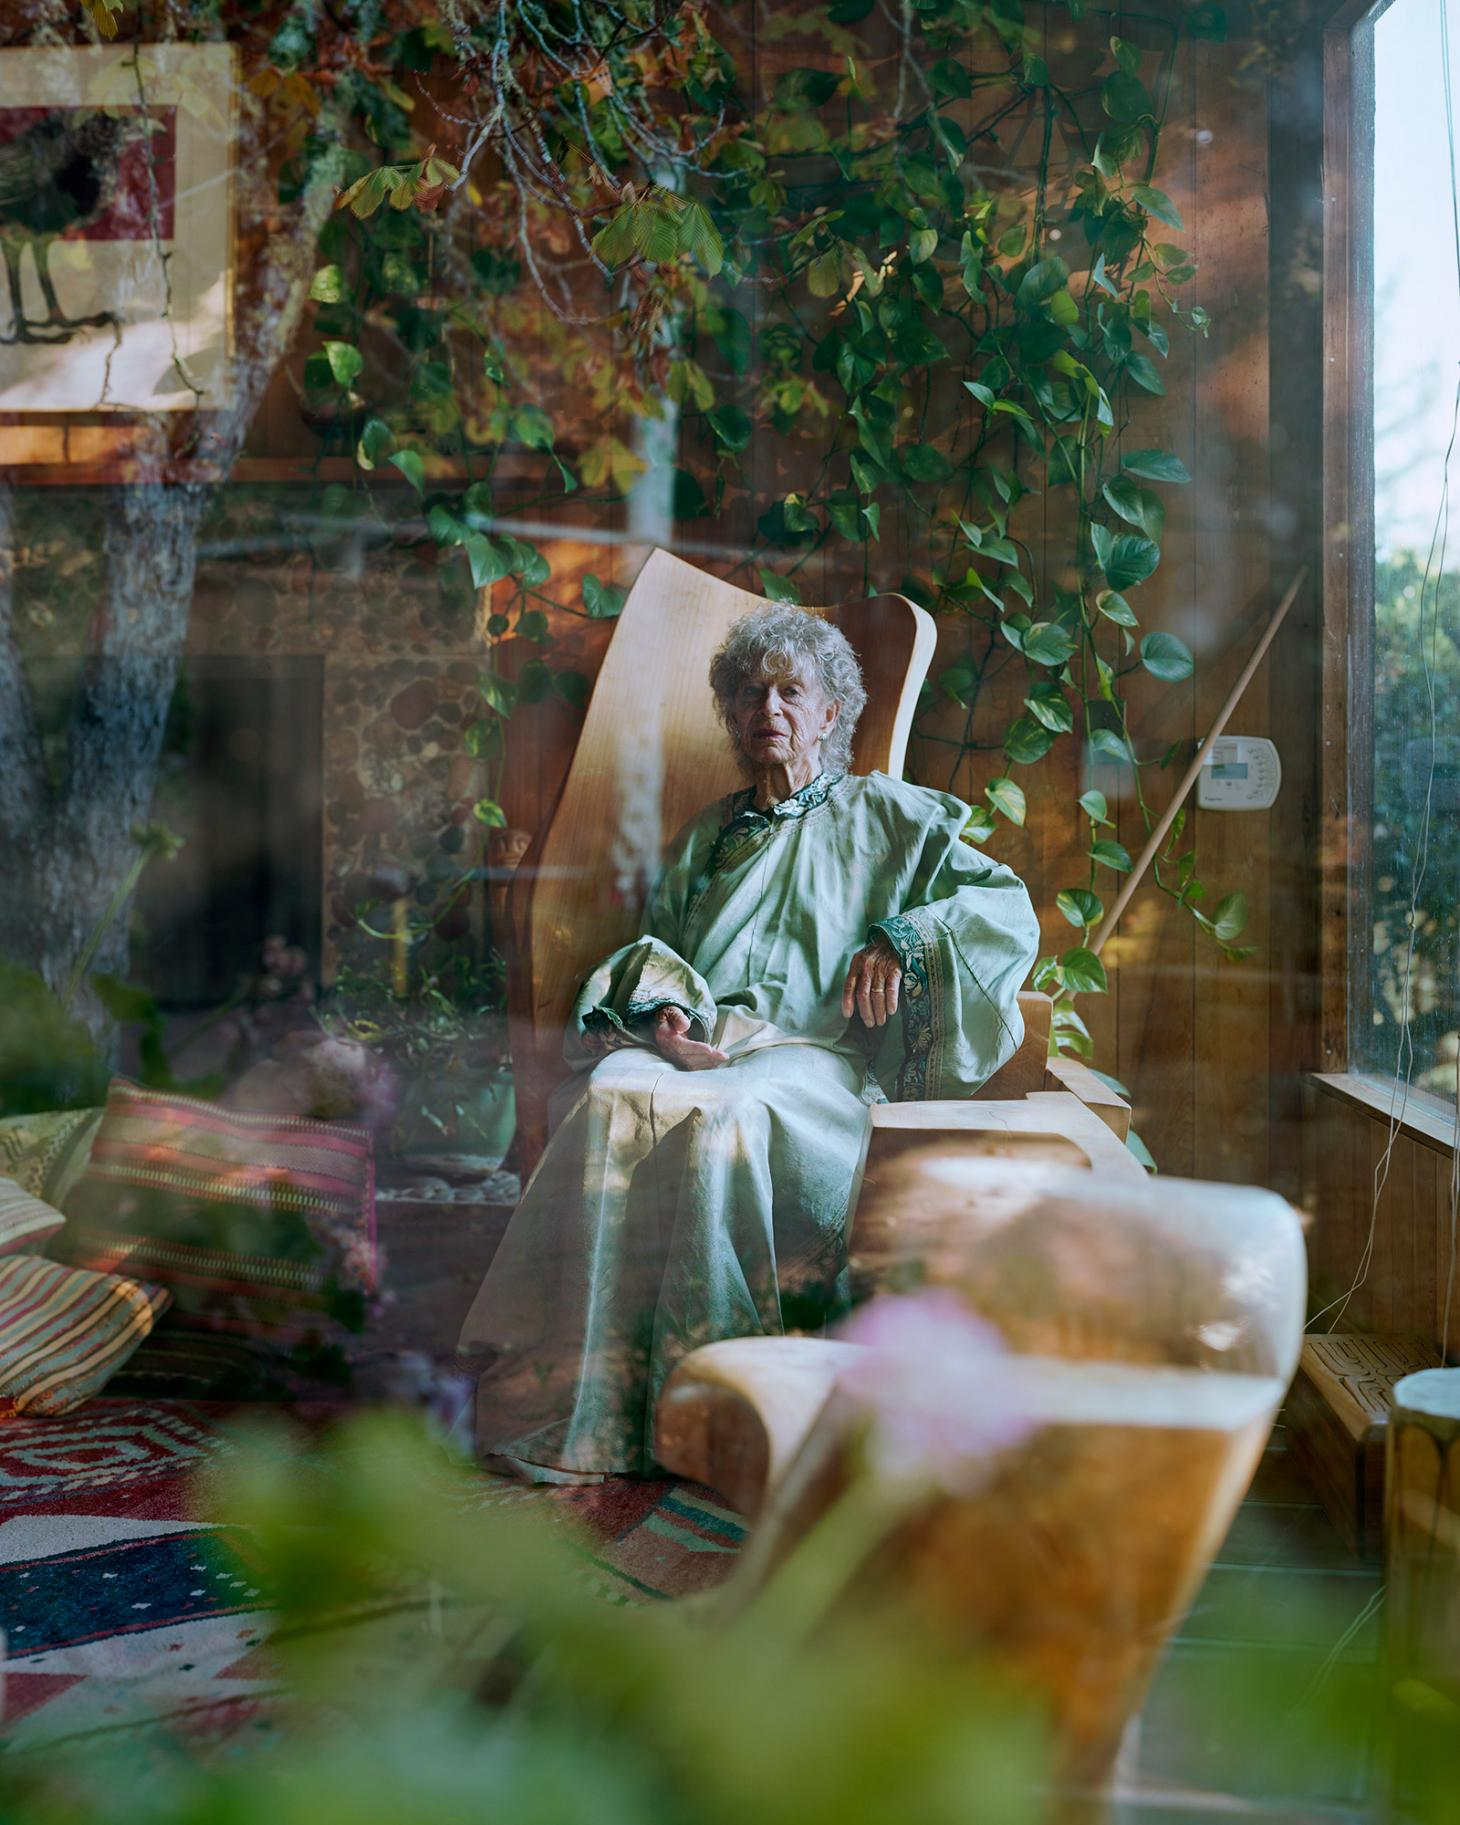 Alec Soth portrait of Anna, from Kentfield, California